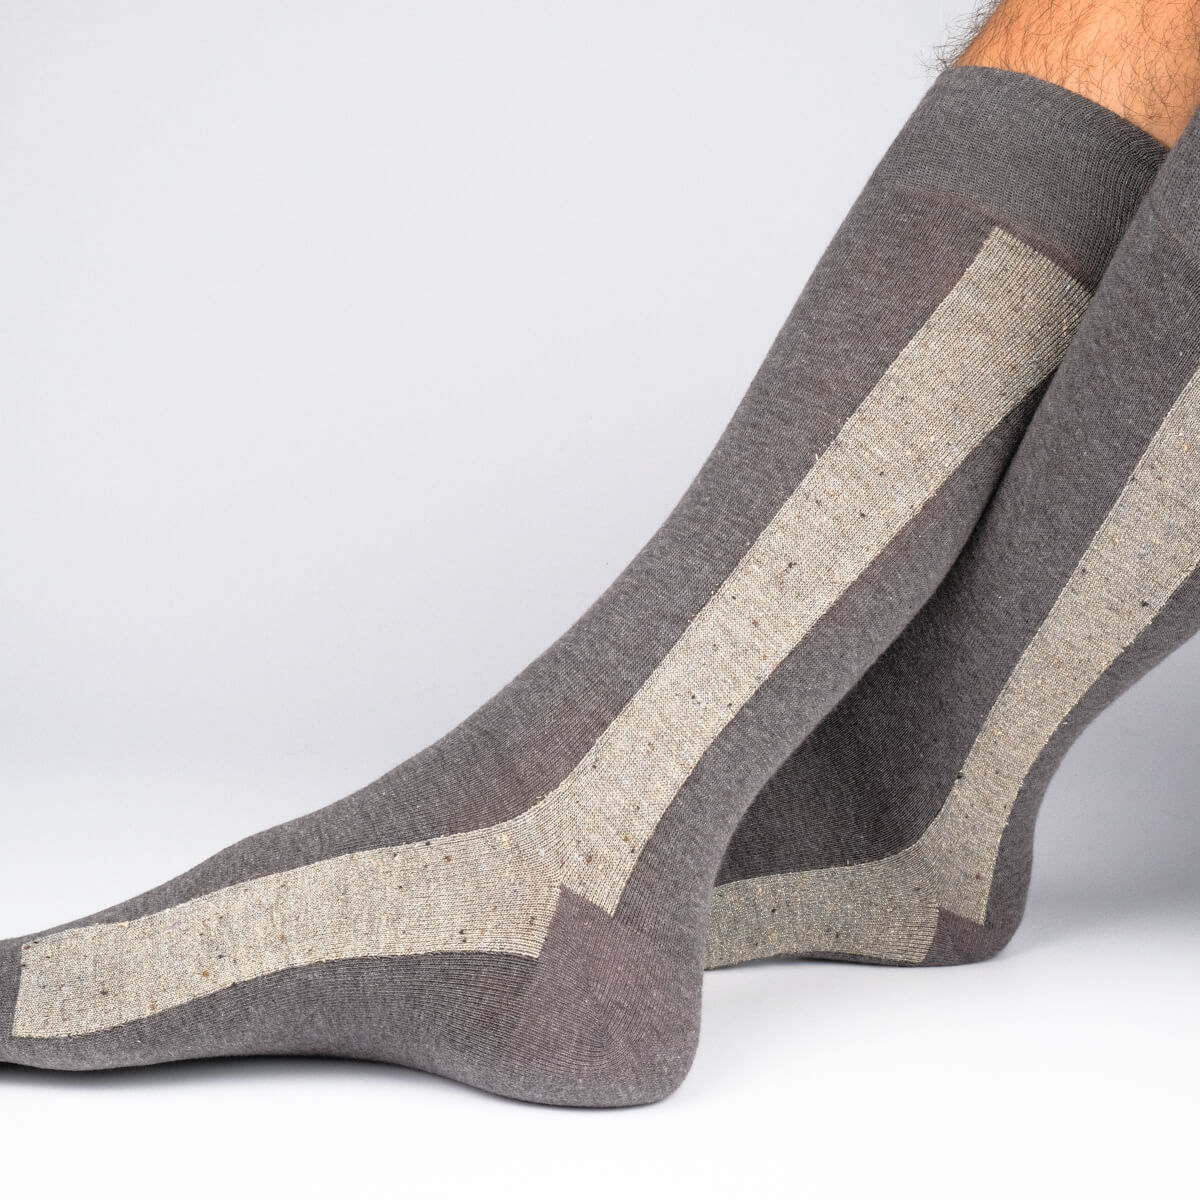 Mens Socks - Beat It Men's Socks Gift Box - Grey Black⎪Etiquette Clothiers